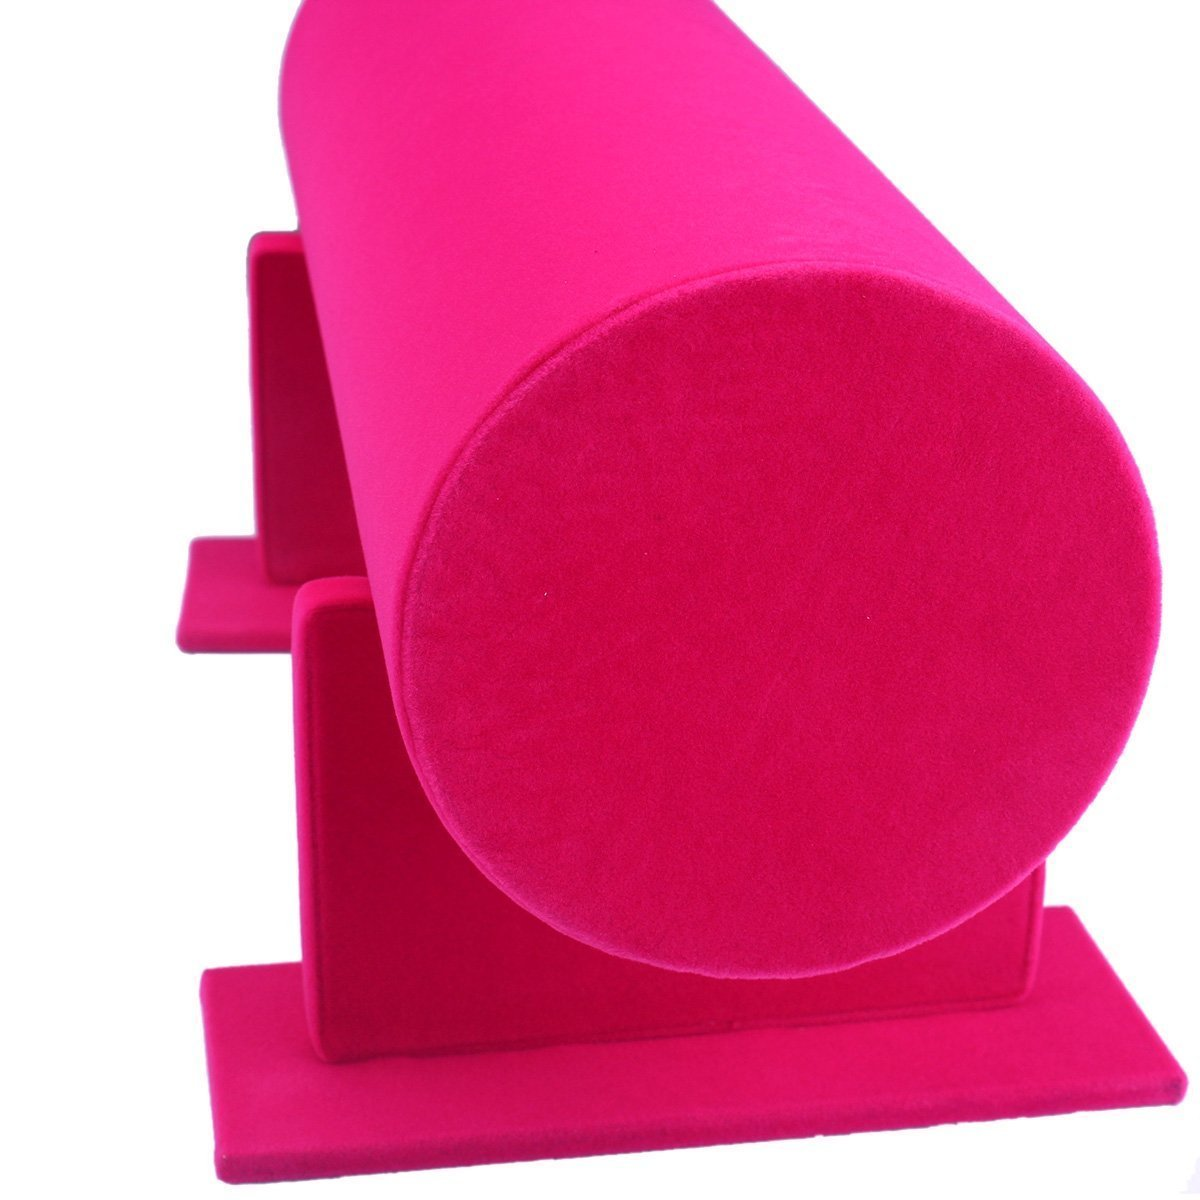 Funi Velvet Hairband Headband Holder Retail Shop Display Stand Rack Holder (14'', Pink) by Funi (Image #3)